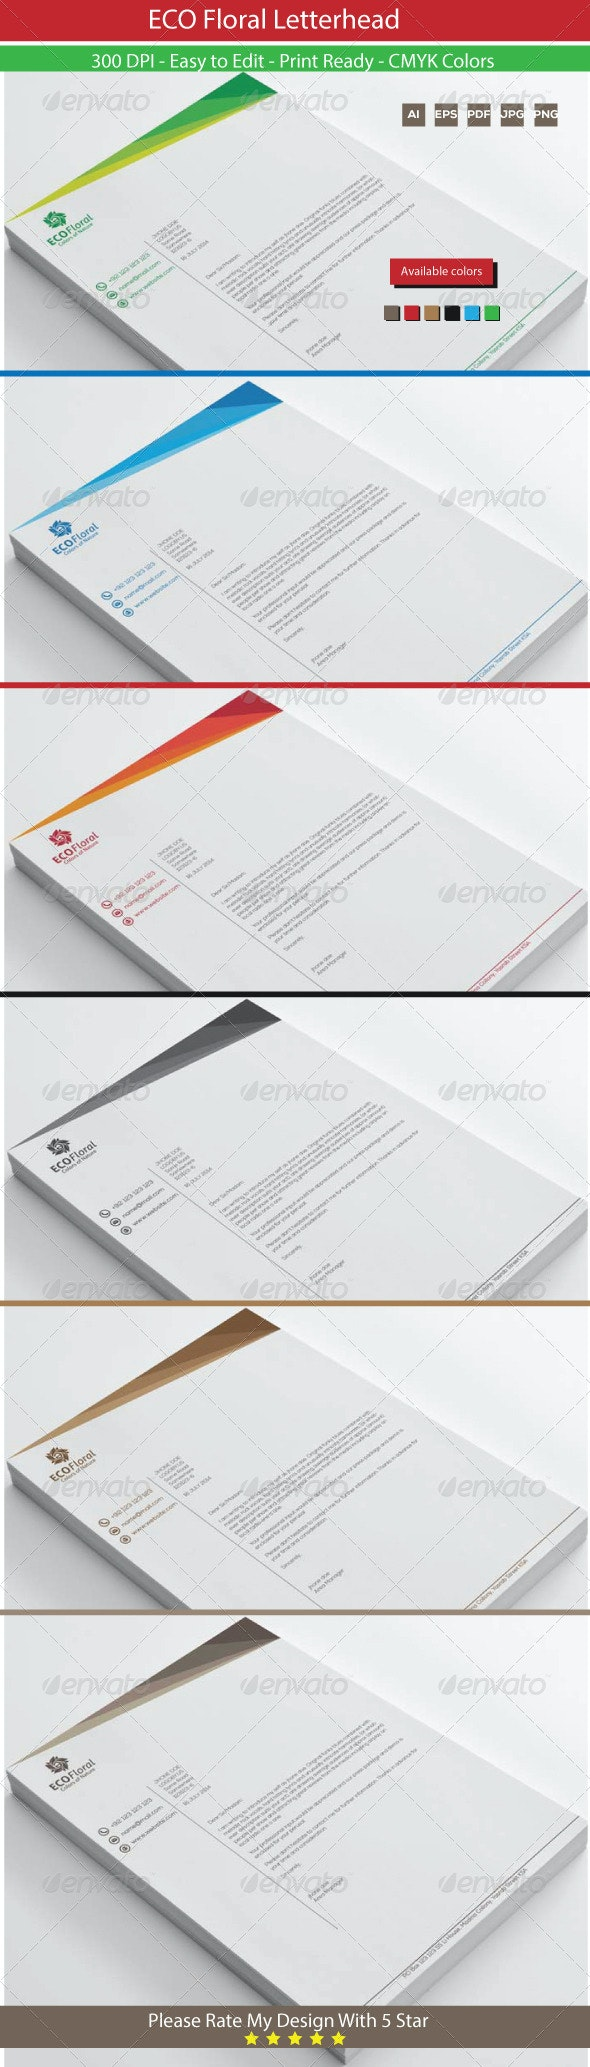 Eco Floral Graphics Letterhead - Stationery Print Templates